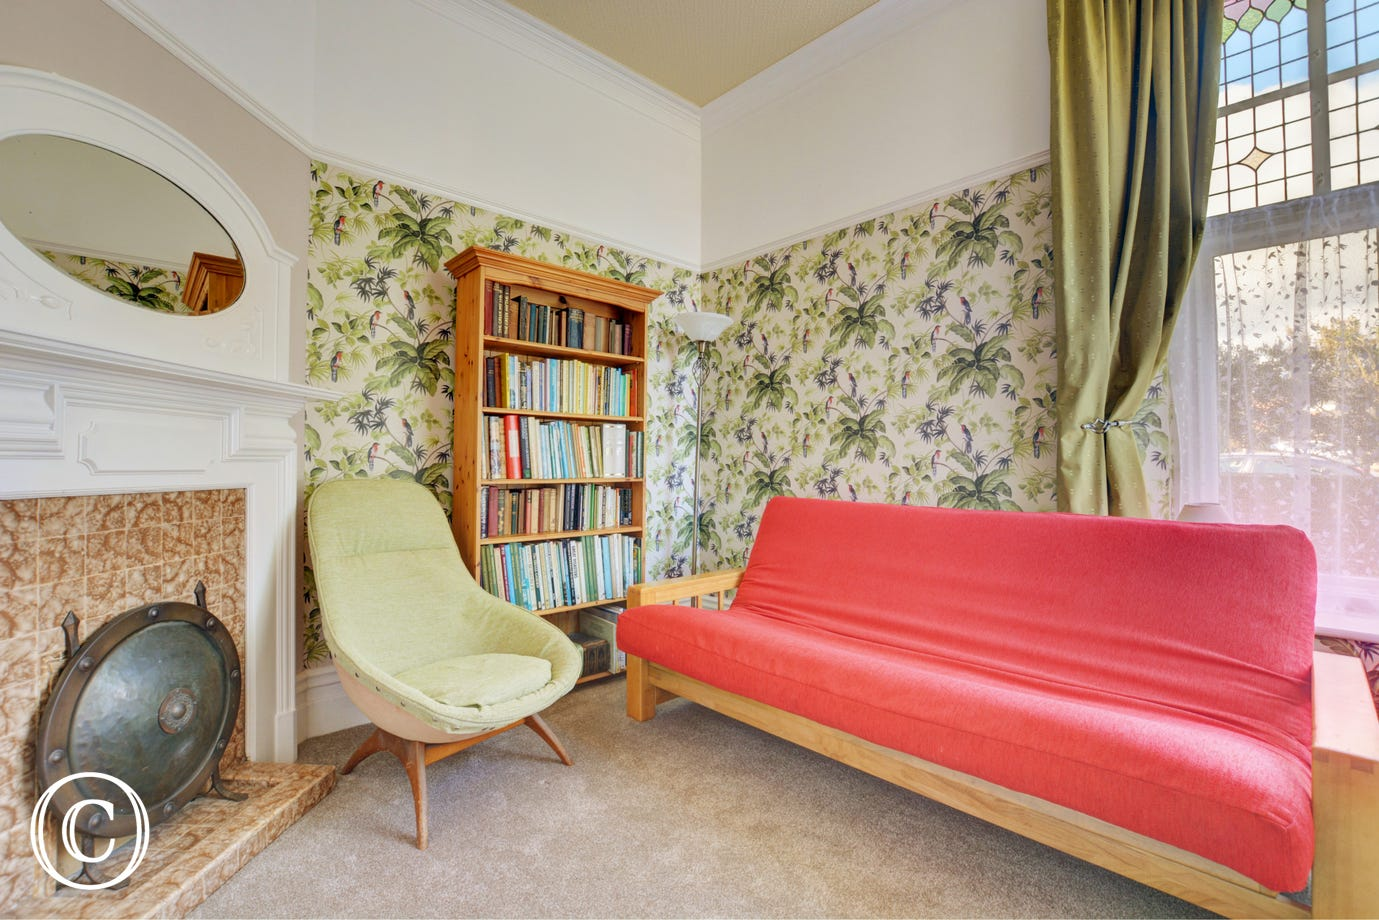 Ground floor snug  with double futon which could be used as alternatively sleeping arrangements – please request on booking